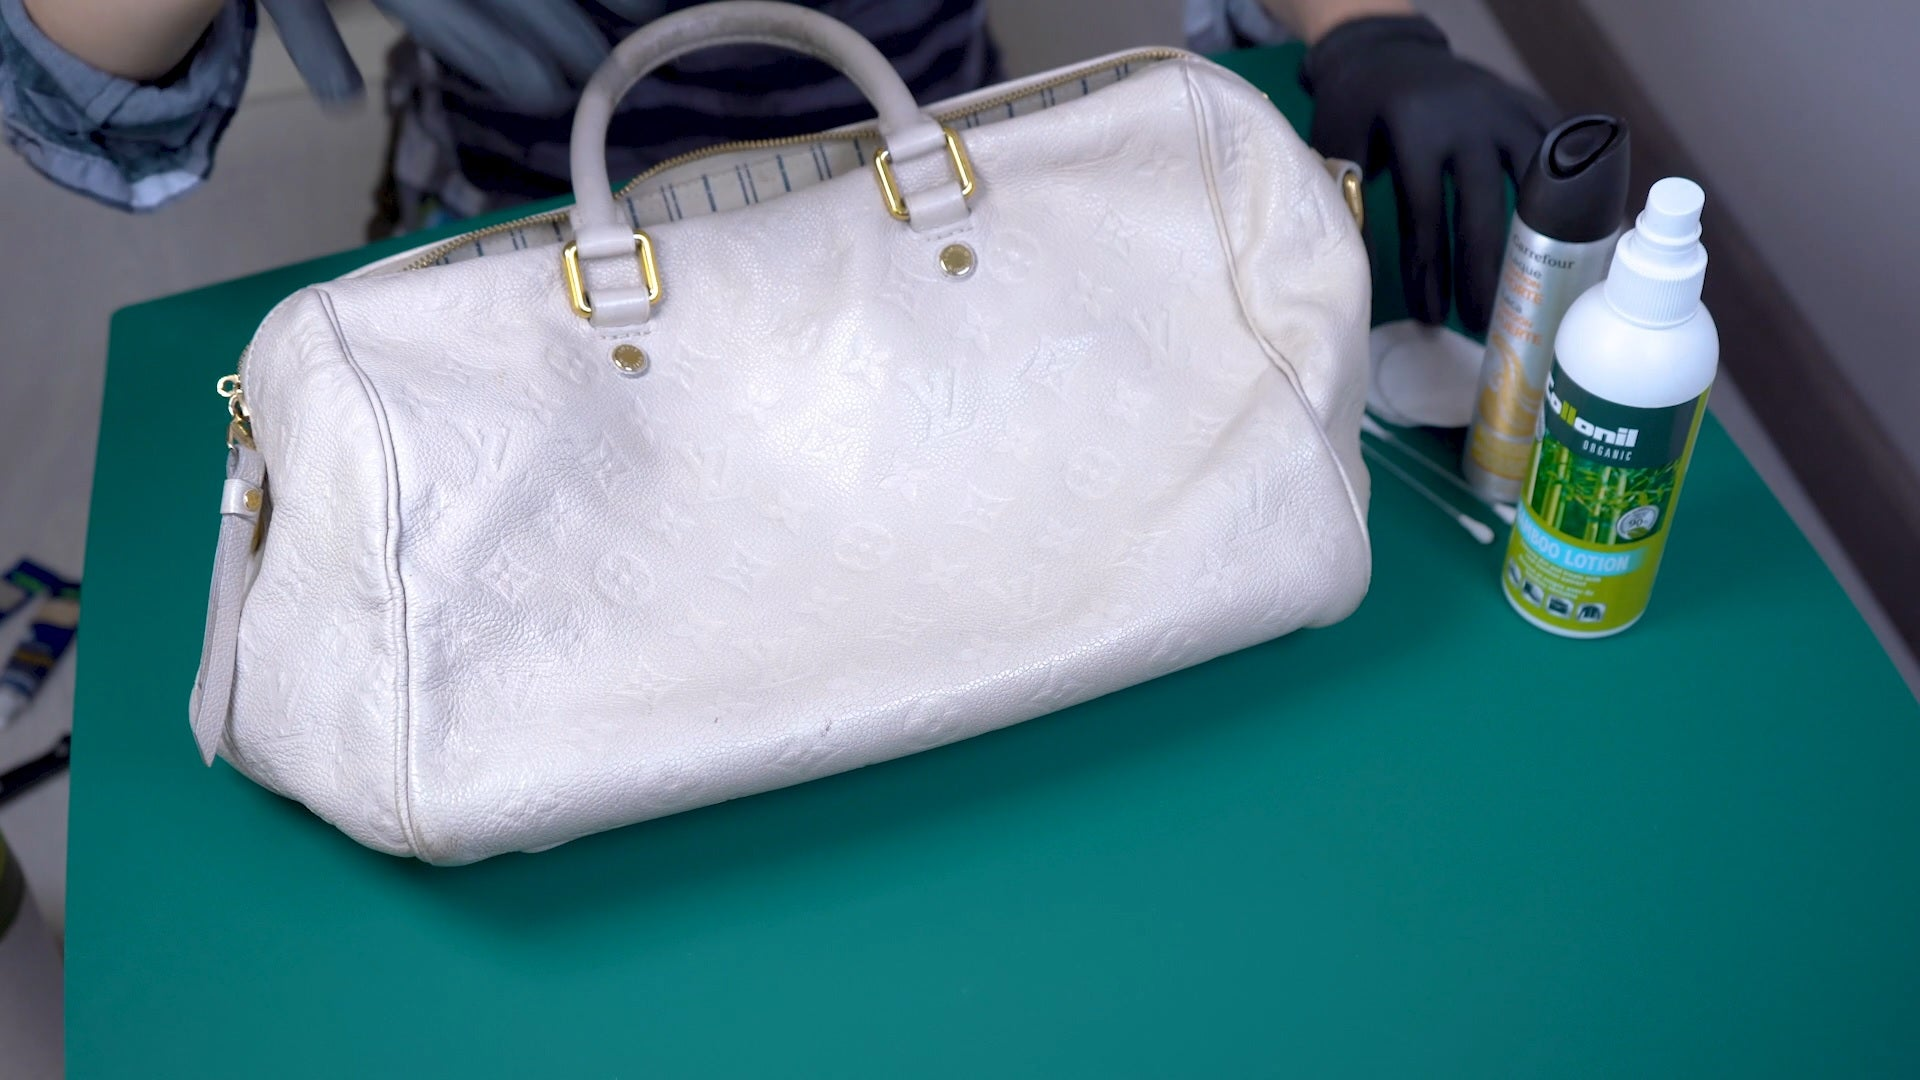 How To Clean Your White Luxury Handbag and Make Sure It Stays White cleaning tips